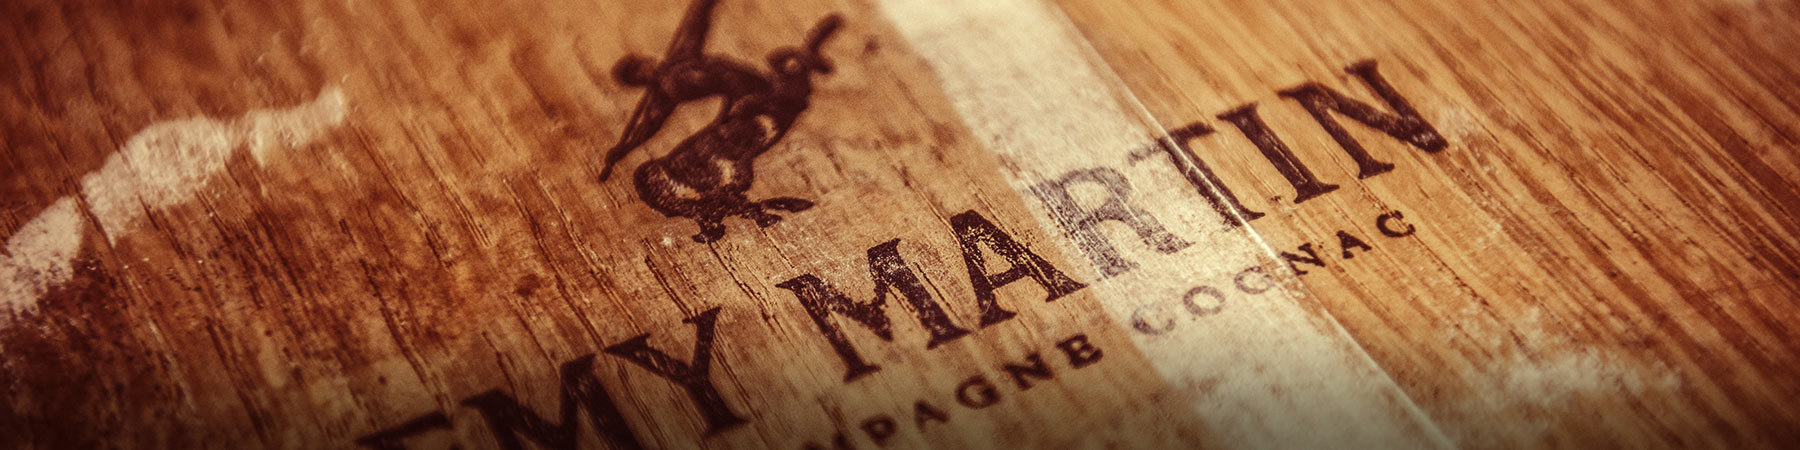 pano-marques-remy-martin